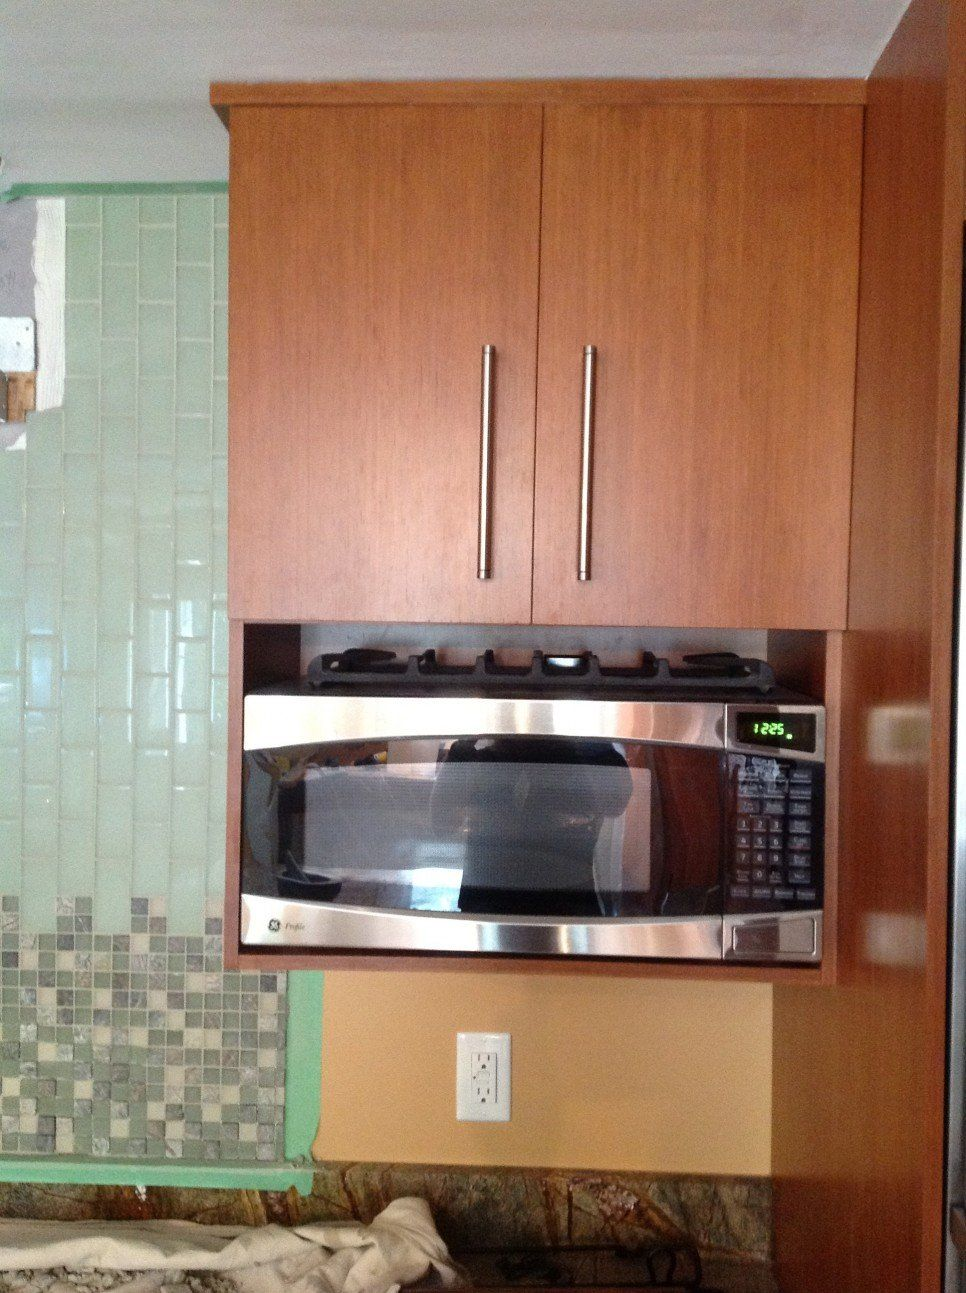 Furniture, Wood Wall Mounted Microwave Shelf Storage Under ... on kitchen stand for microwave, stainless steel wall shelf for microwave, kitchen cabinet for microwave, kitchen shelves for microwave, kitchen rack for microwave, oak wall shelf for microwave, kitchen shelving for microwave, wooden wall shelf for microwave,